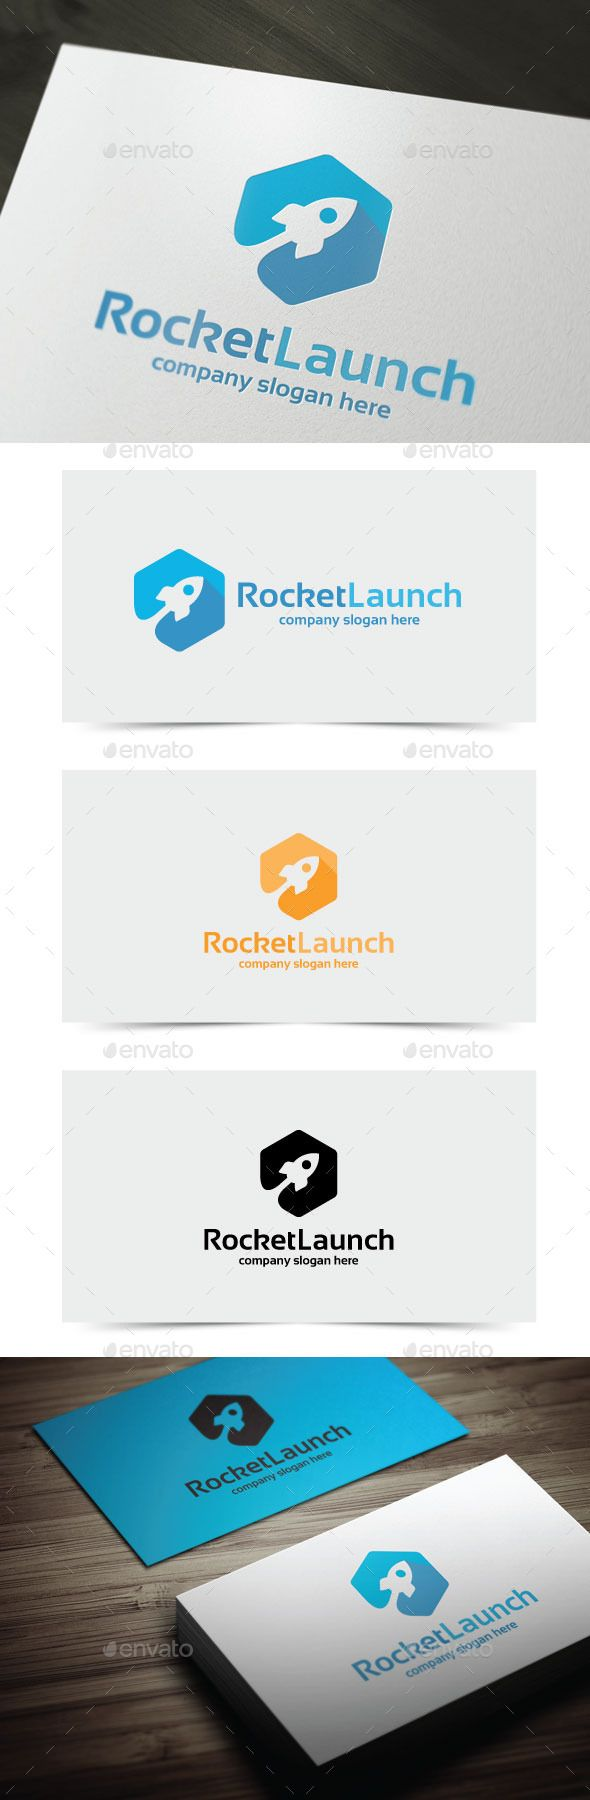 Rocket Launch — Photoshop PSD #rocket #finance • Available here → https://graphicriver.net/item/rocket-launch/10825960?ref=pxcr